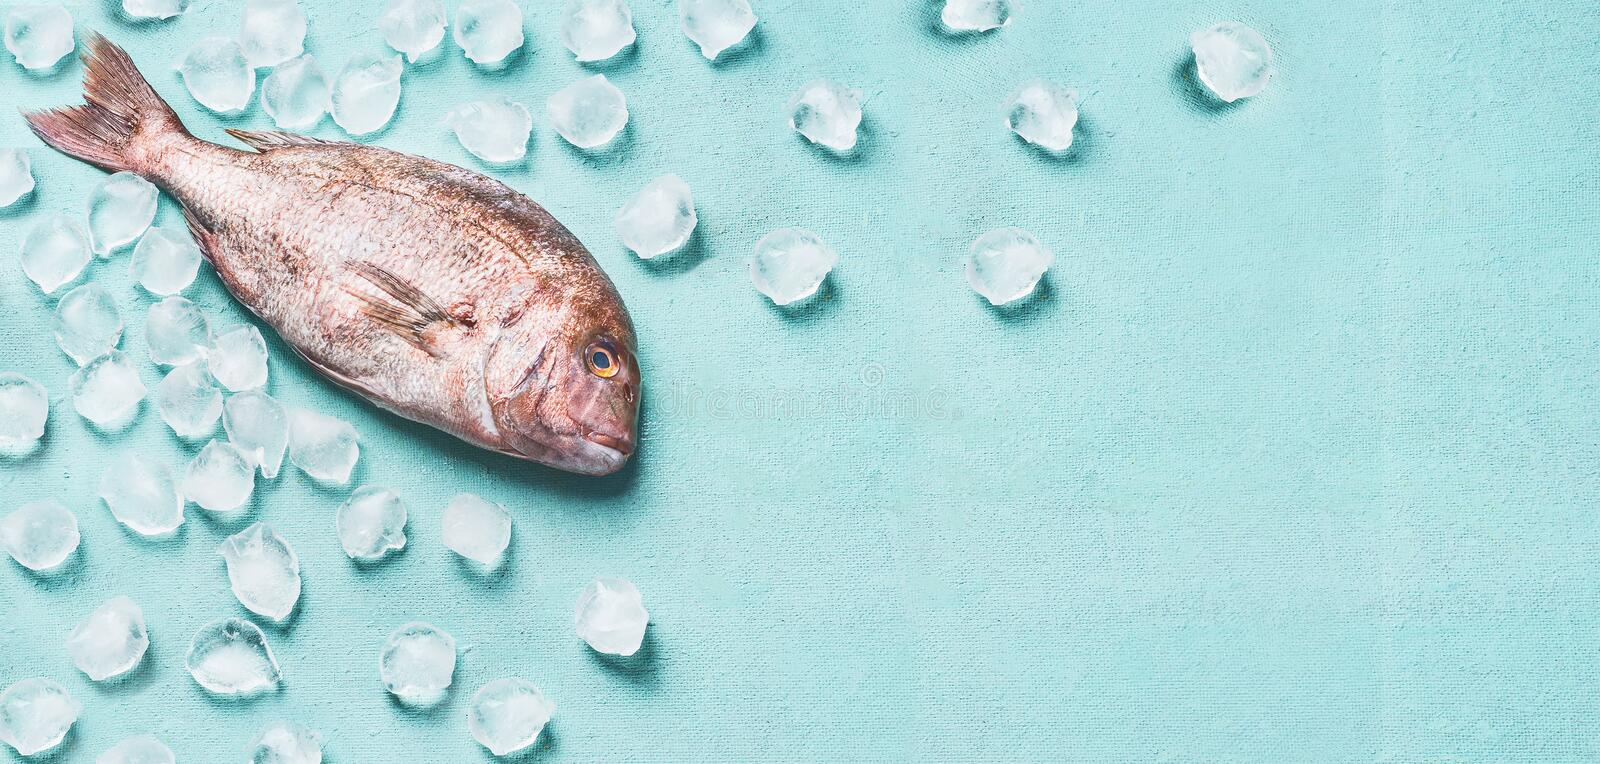 Raw whole fish on light turquoise background with ice cubes, top view. Seafood concept. Pink dorado. Food flat lay stock photos